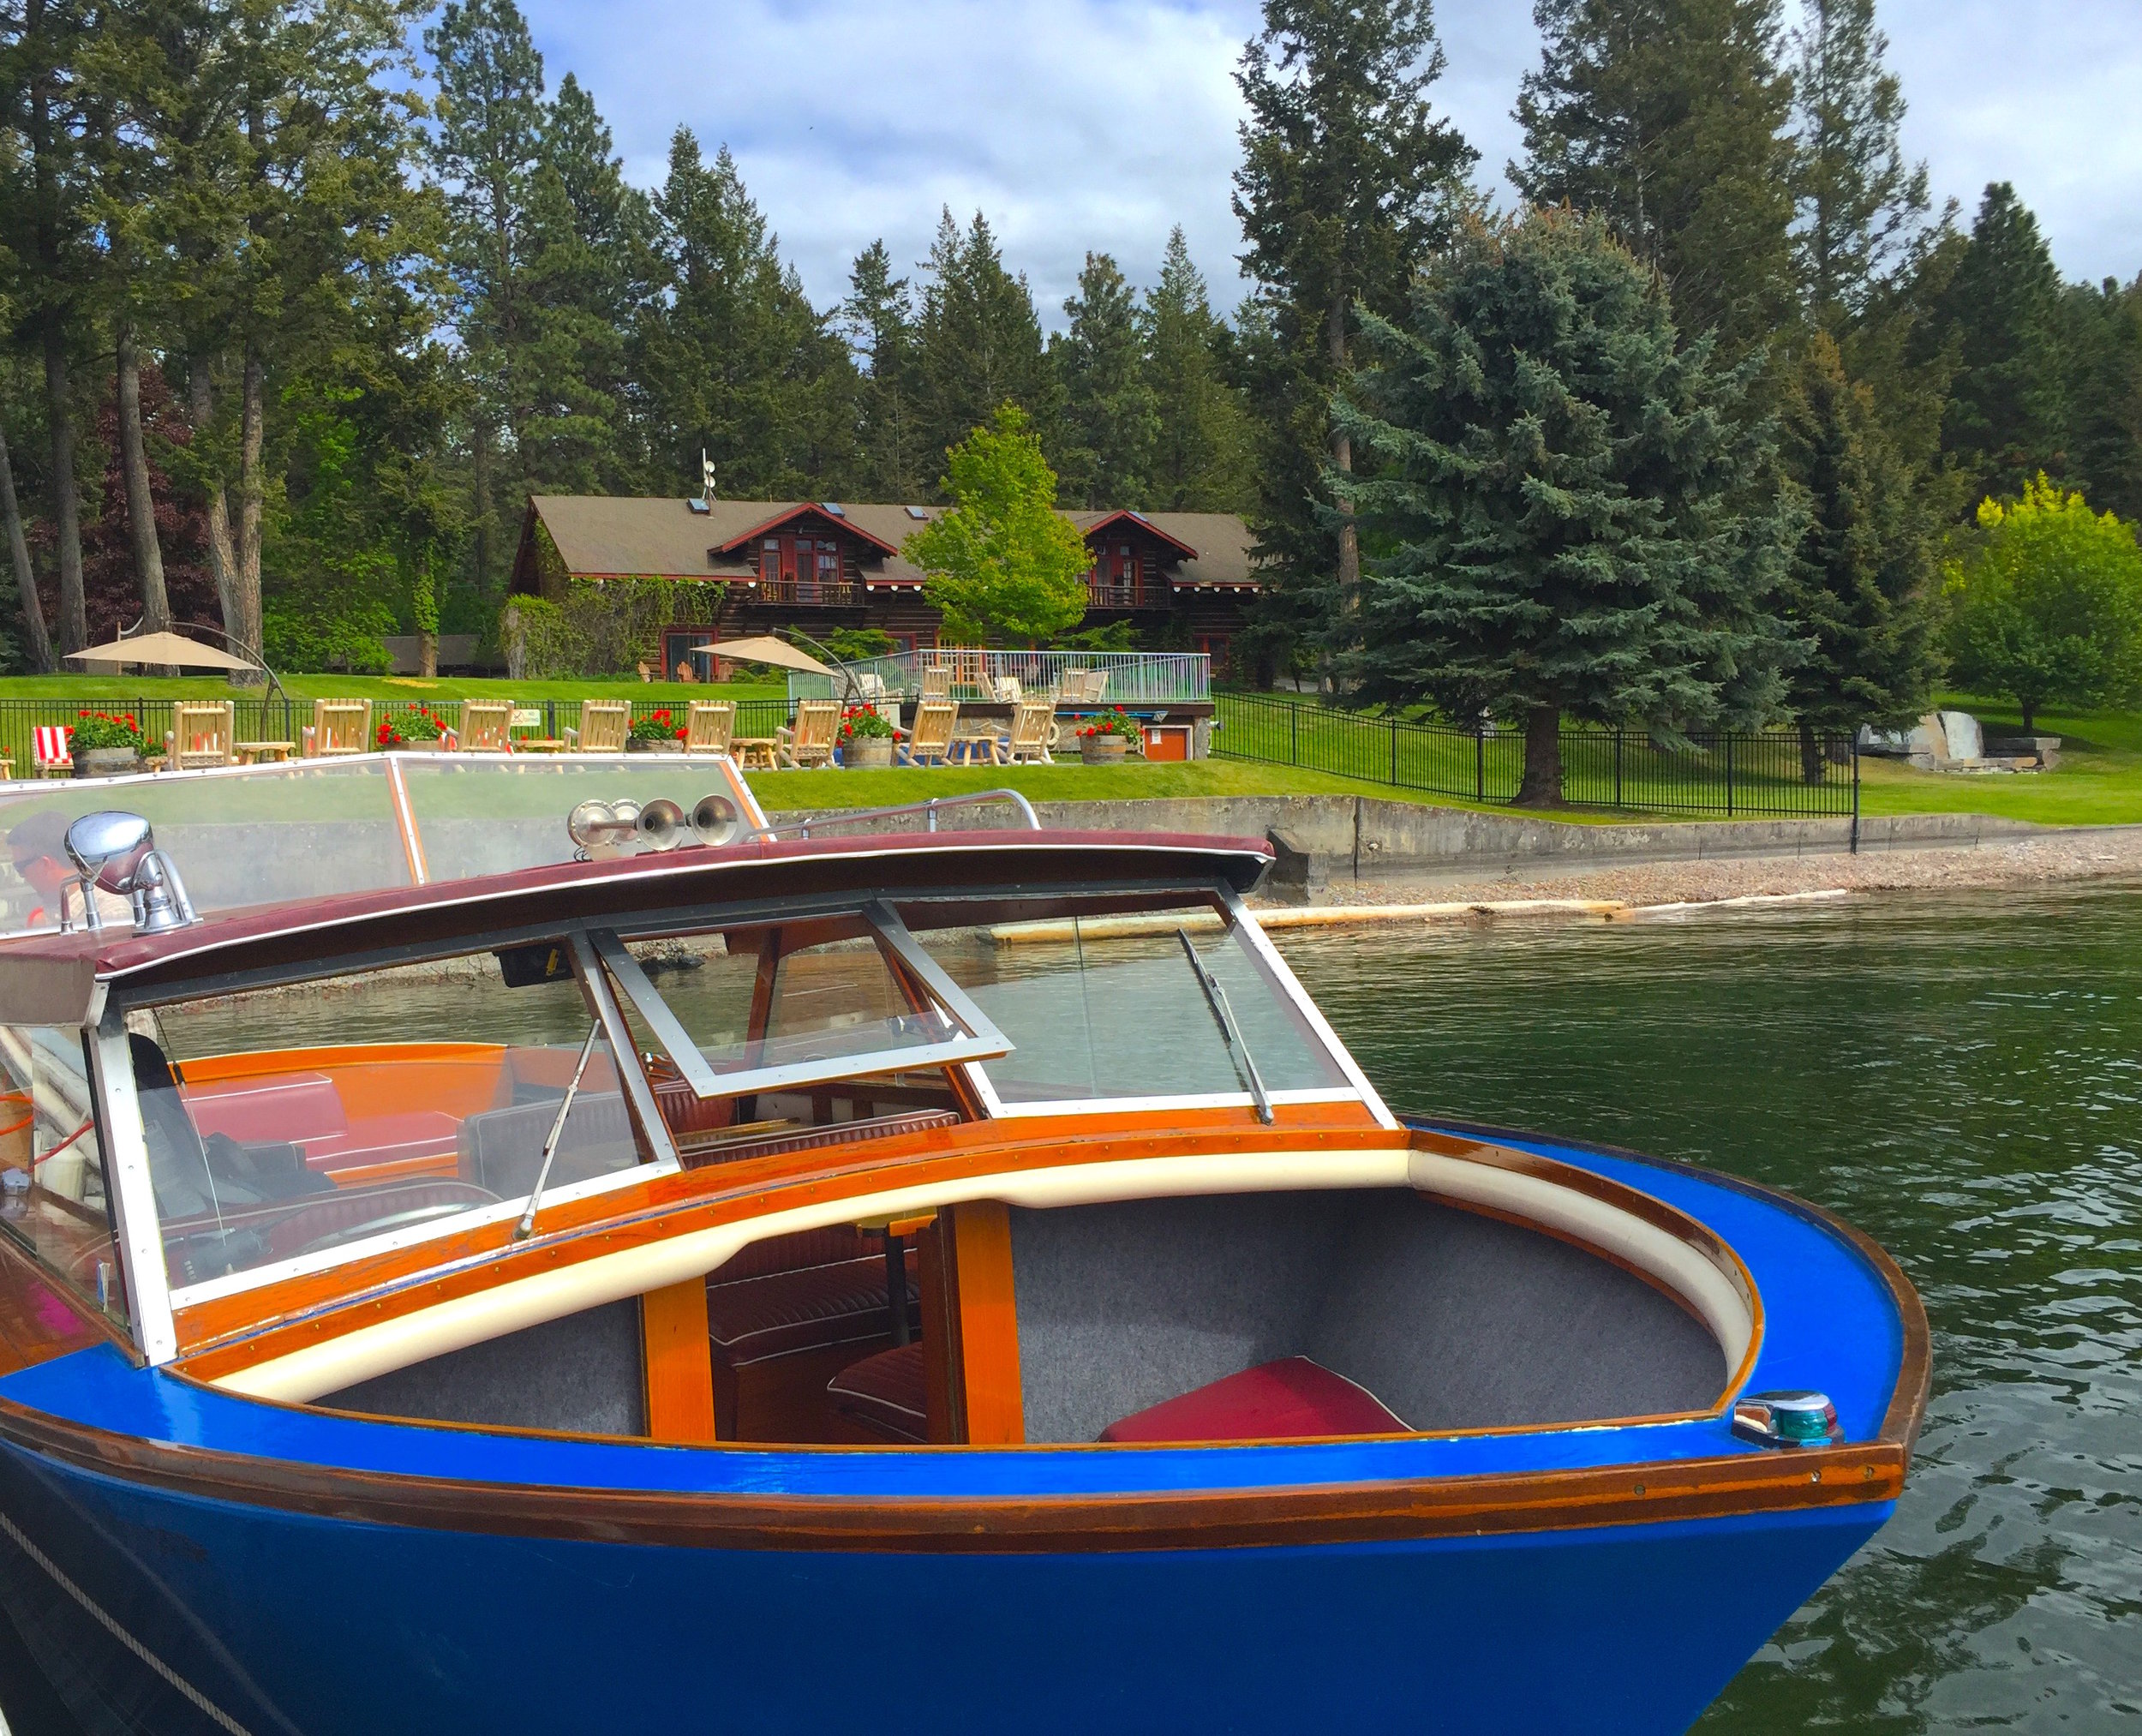 Flathead Lake Lodge, one of Montana's iconic stays, has been welcoming guests since the 1940s.